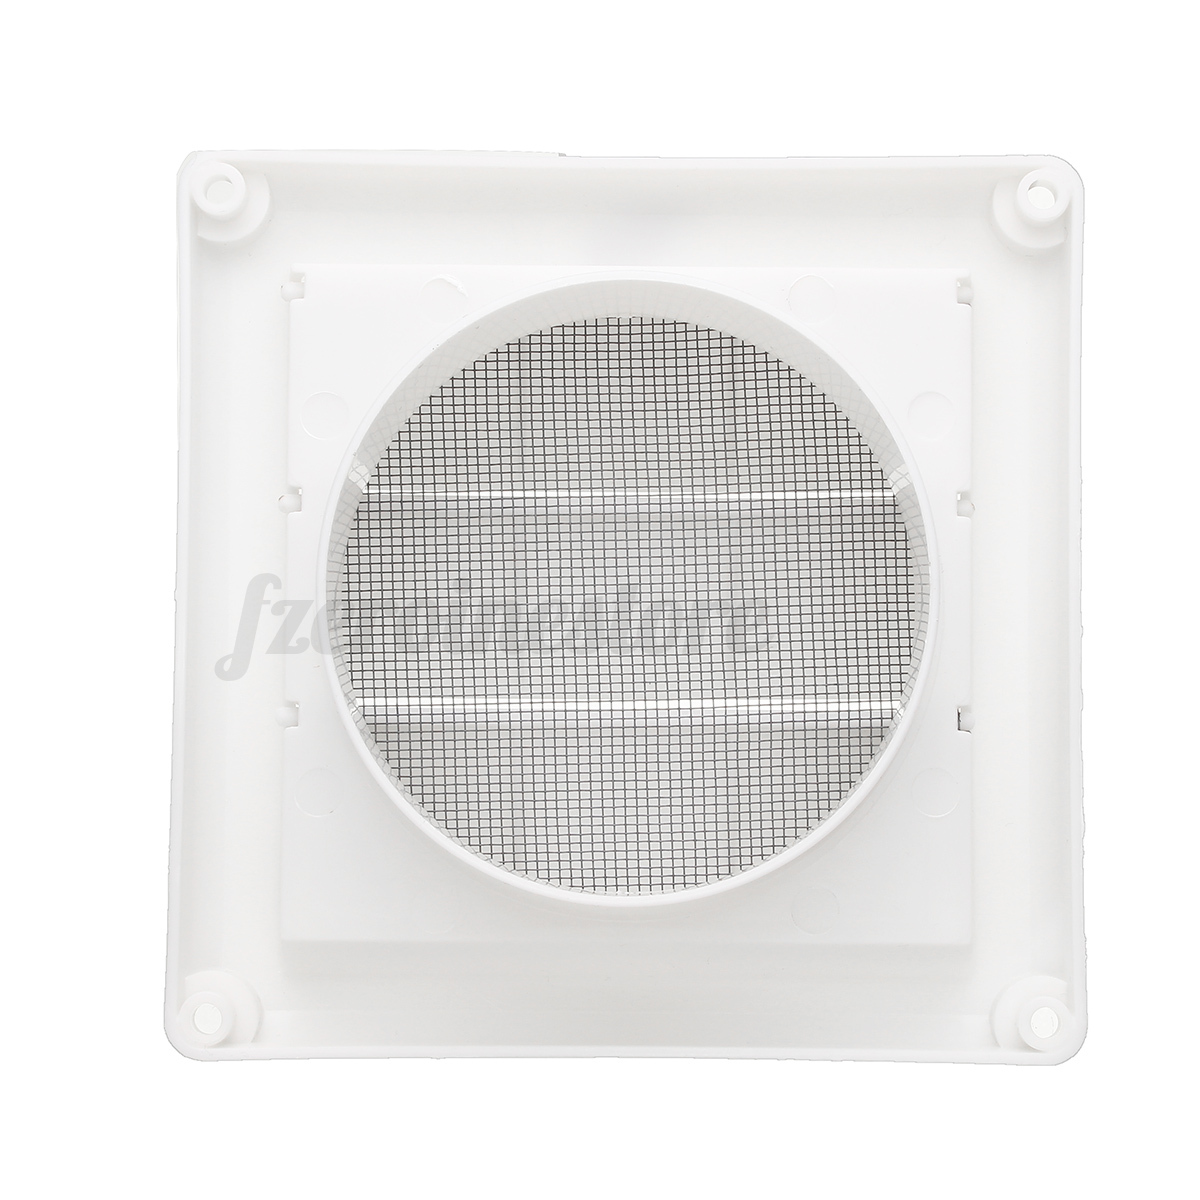 #686863 Plastic Air Vent Grille Cover 3 Gravity Flaps Wall  Best 5813 Plastic Air Vent Grilles photos with 1200x1200 px on helpvideos.info - Air Conditioners, Air Coolers and more